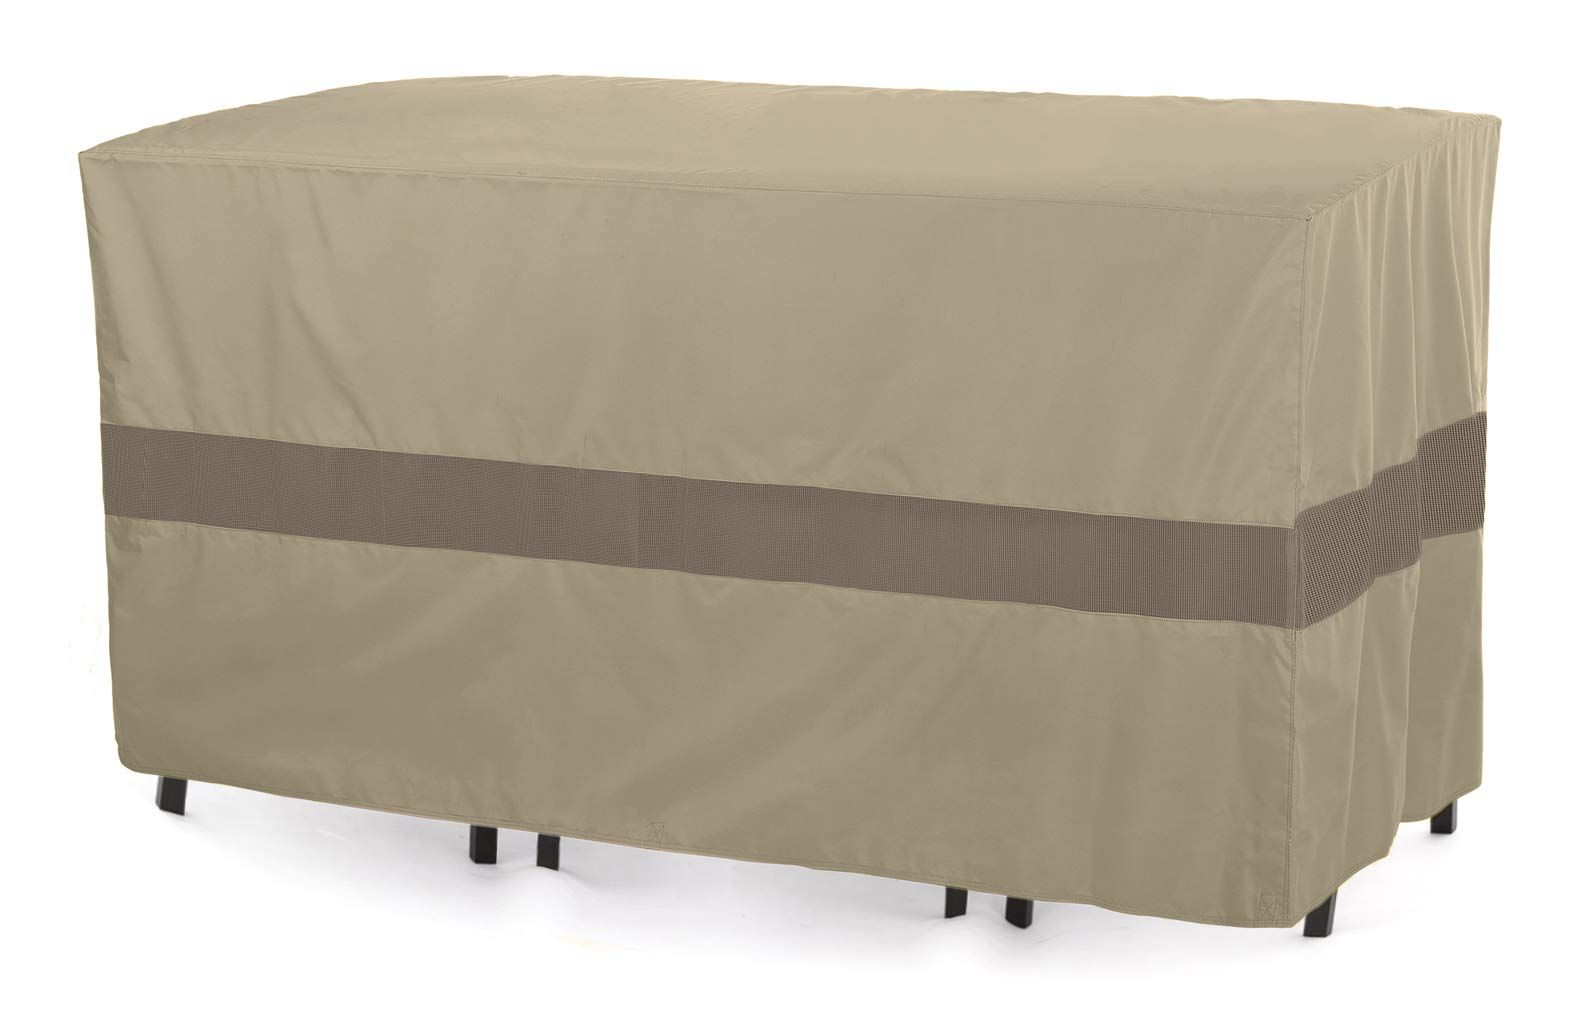 Sunpatio Outdoor Bistro Cover Extremely Lightweight Water Resistant Eco Friendly Outdoor Furniture Covers Sectional Patio Furniture Outdoor Dining Furniture